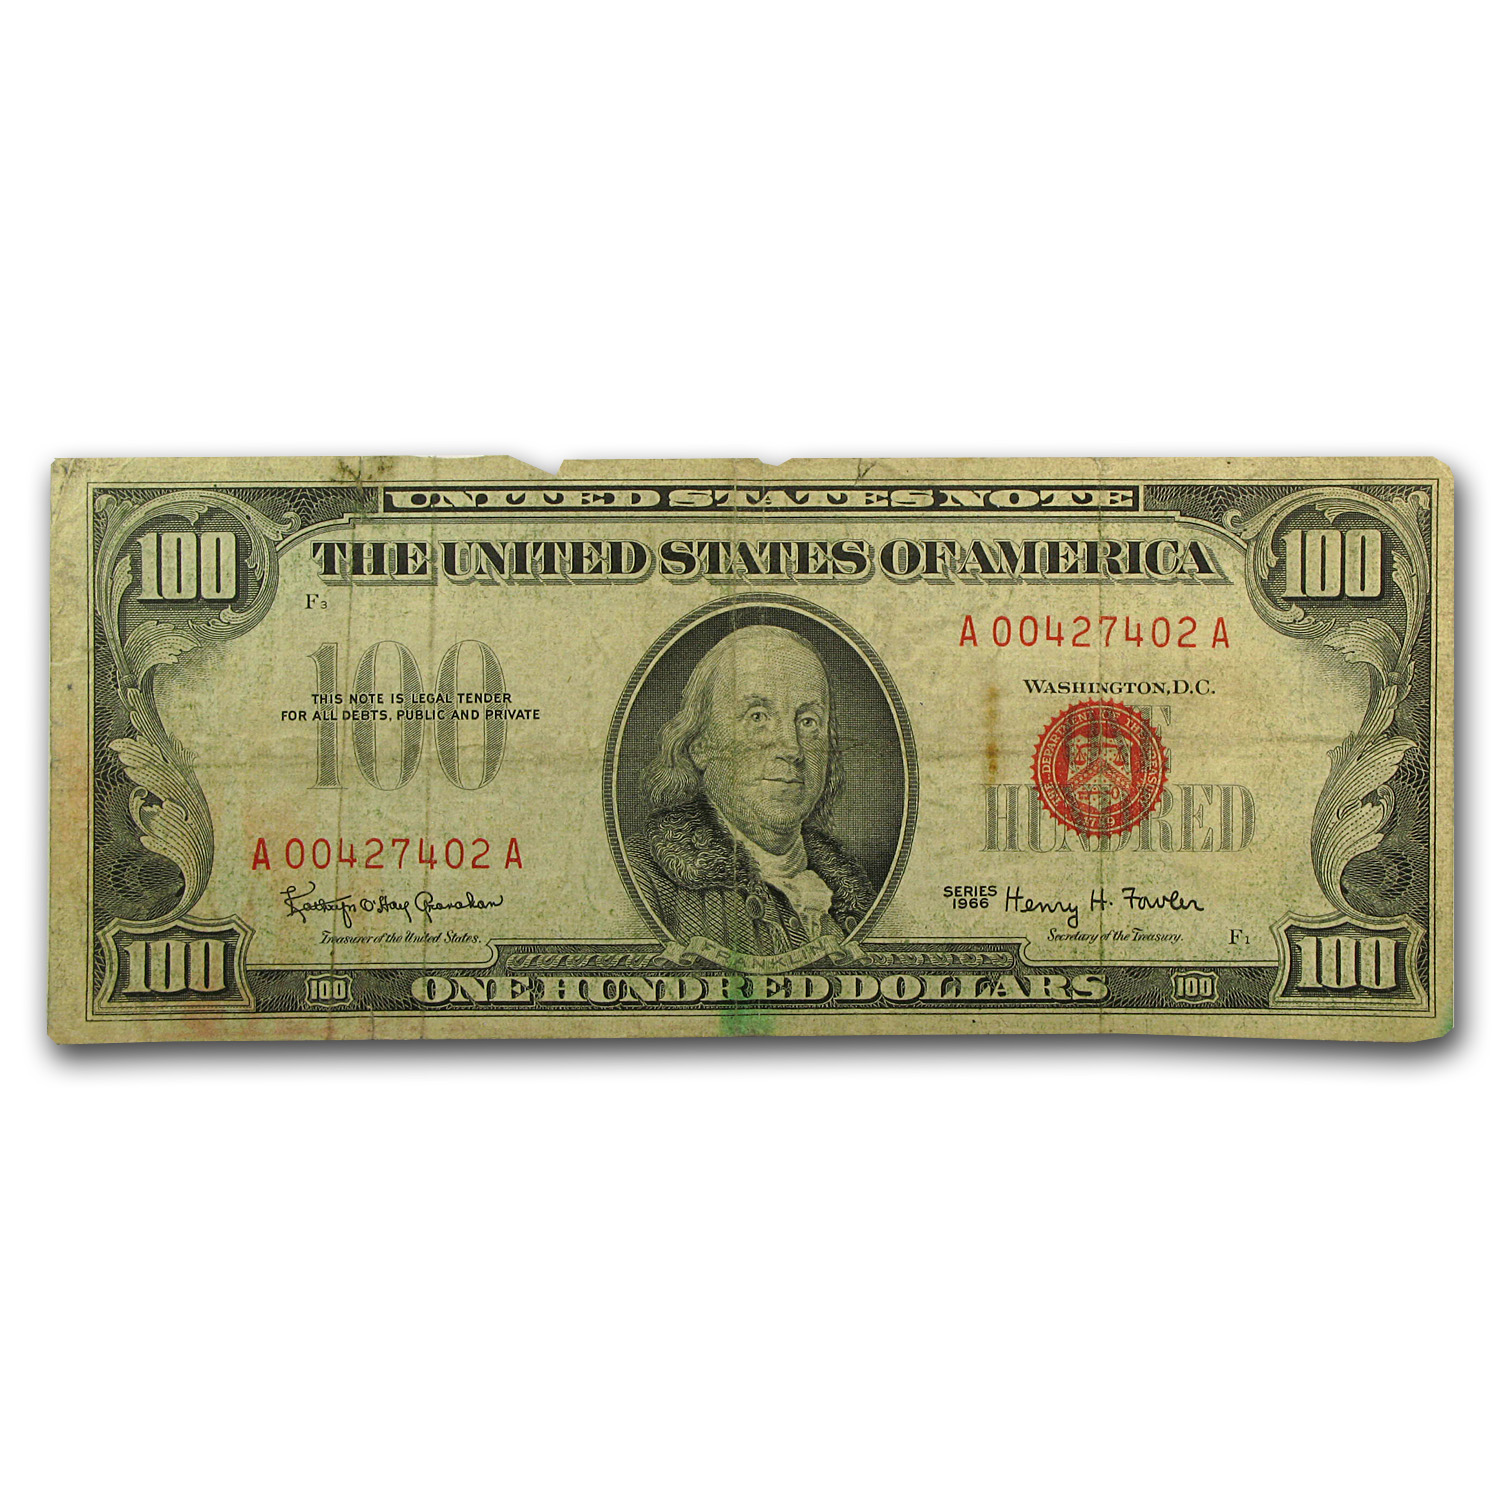 1966 $100 U. S. Note Red Seal VG/Fine